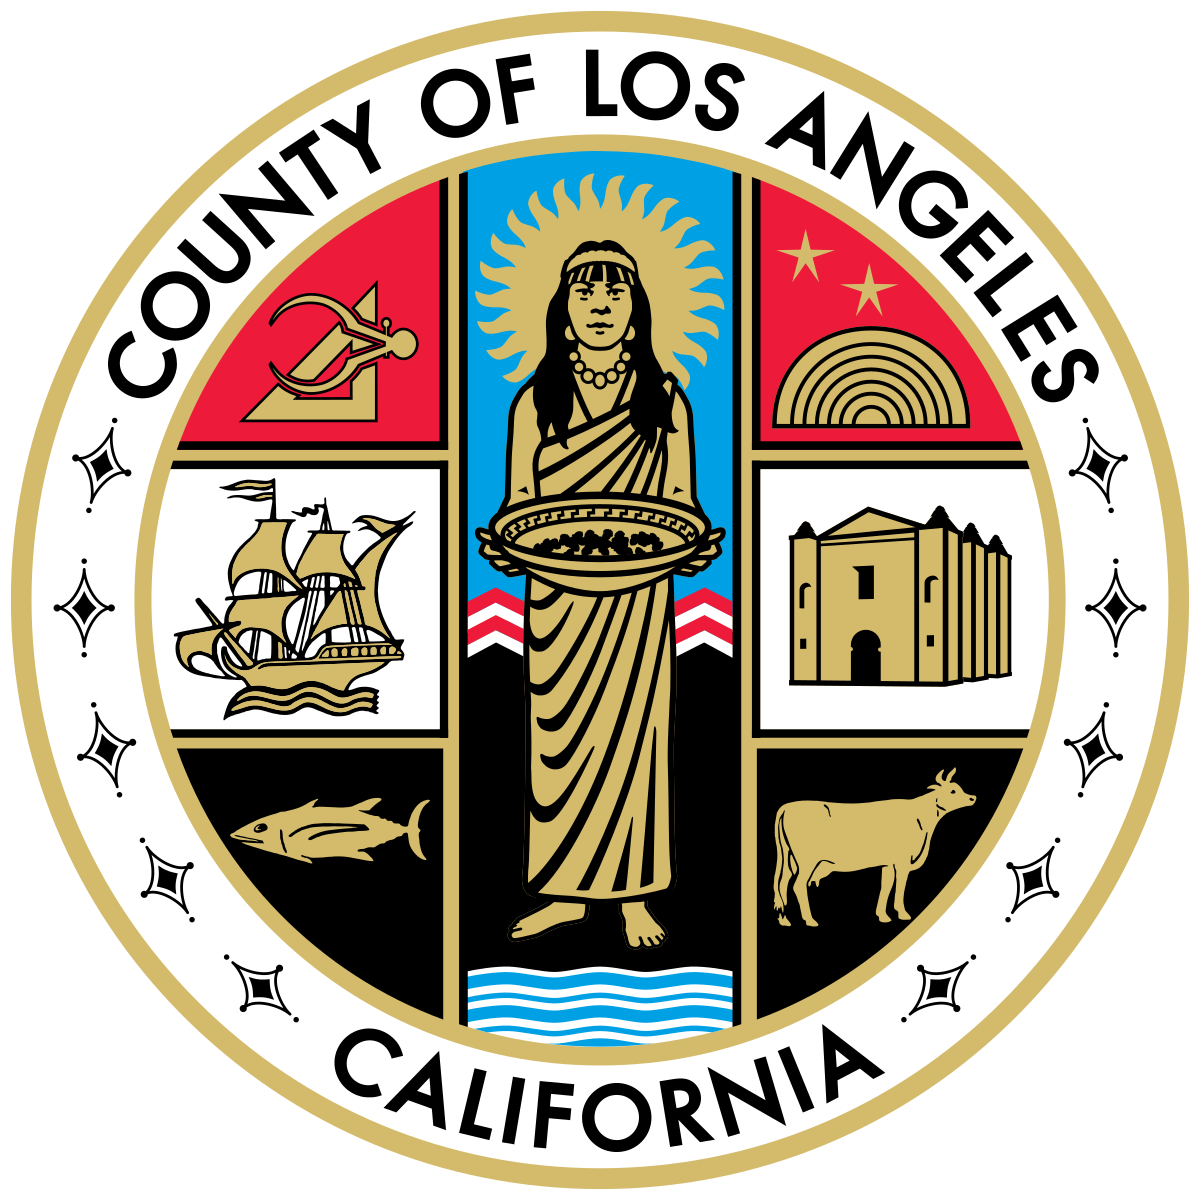 Seal_of_Los_Angeles_County,_California.svg